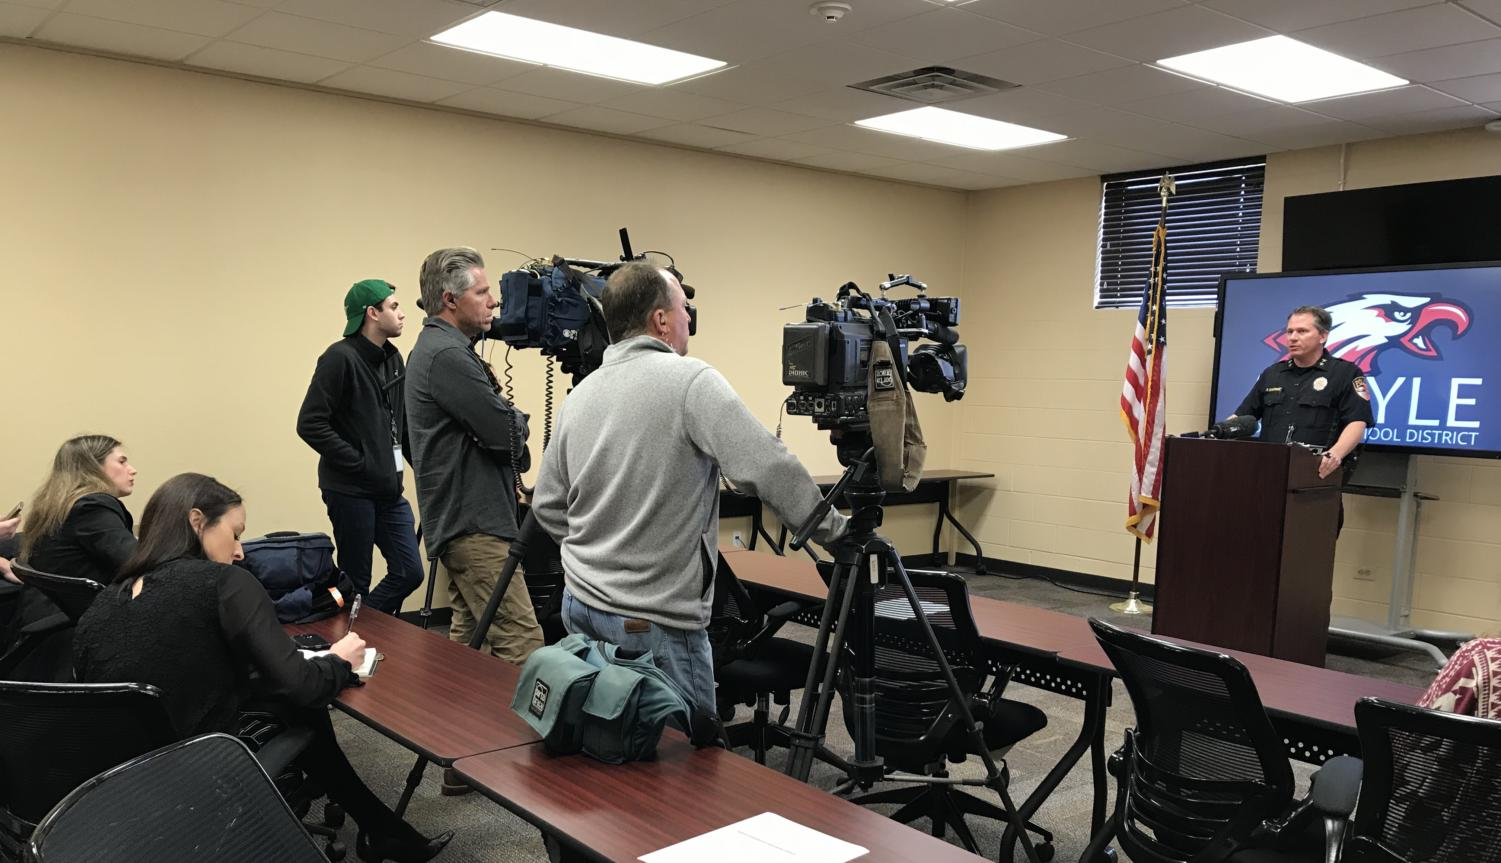 AISD Police Chief Paul Cairney addresses media about the district's armed staff policy at a press conference at the administration building on Thursday in Argyle, TX. (Miranda Downe / The Talon News)